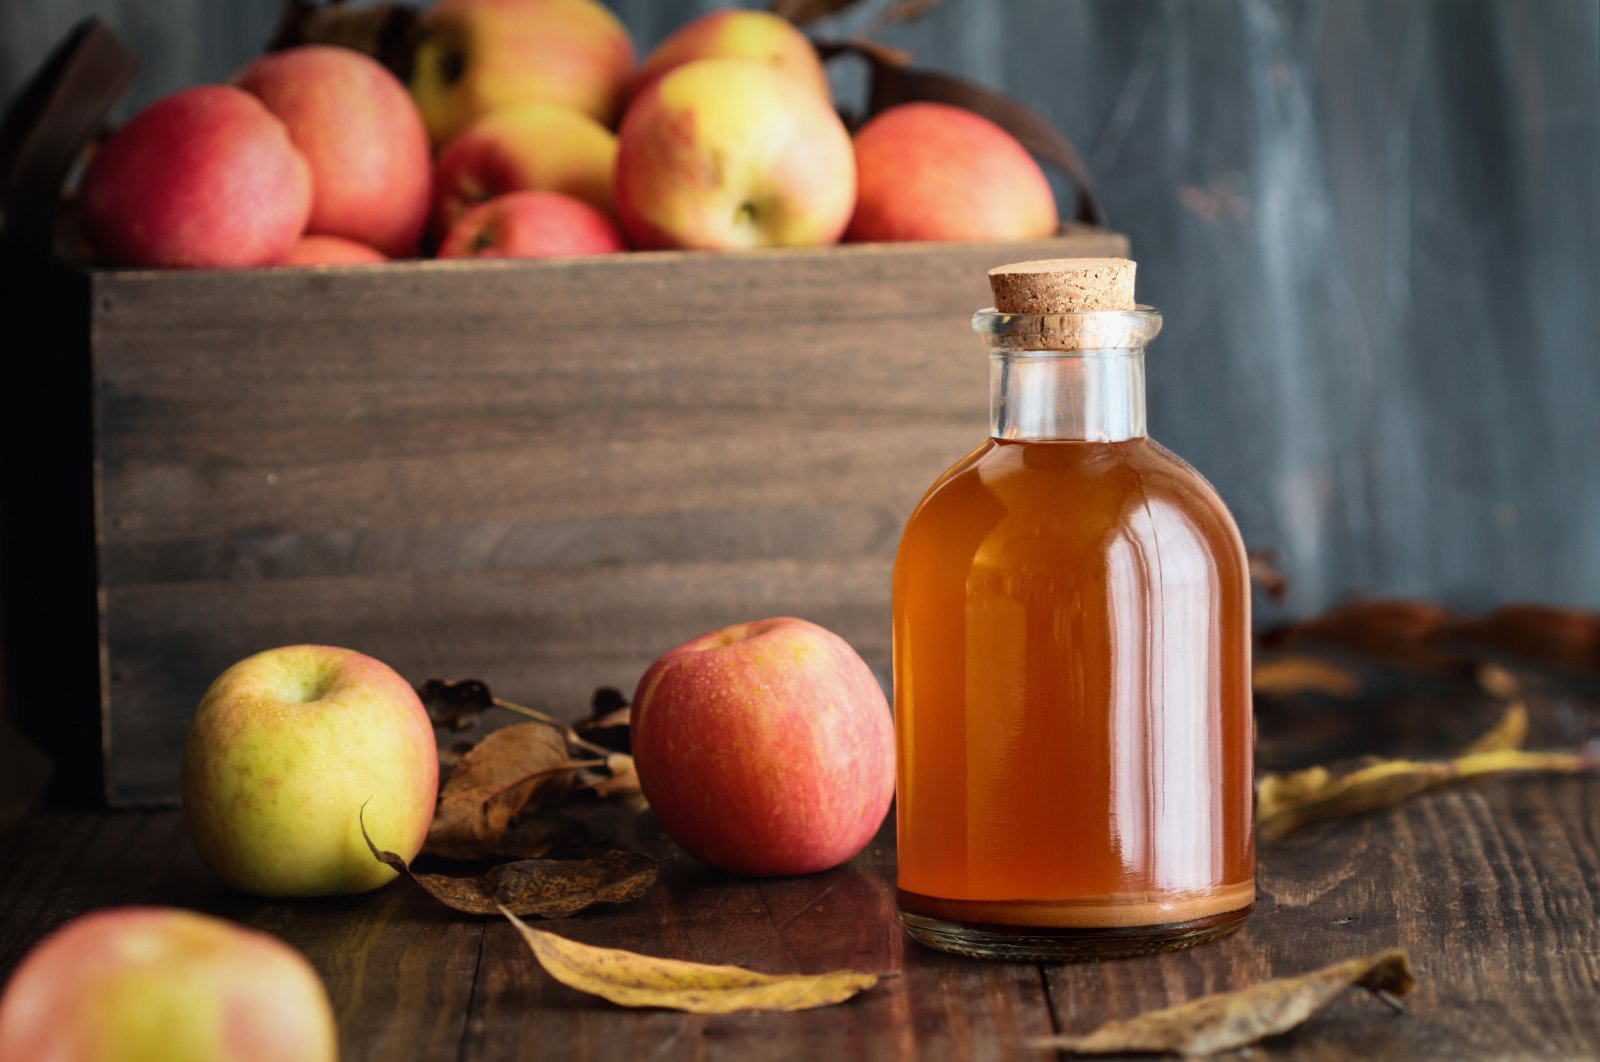 Apple cider vinegar is one of the healthiest and versatile kinds of vinegar out there. (Alamy Photo)